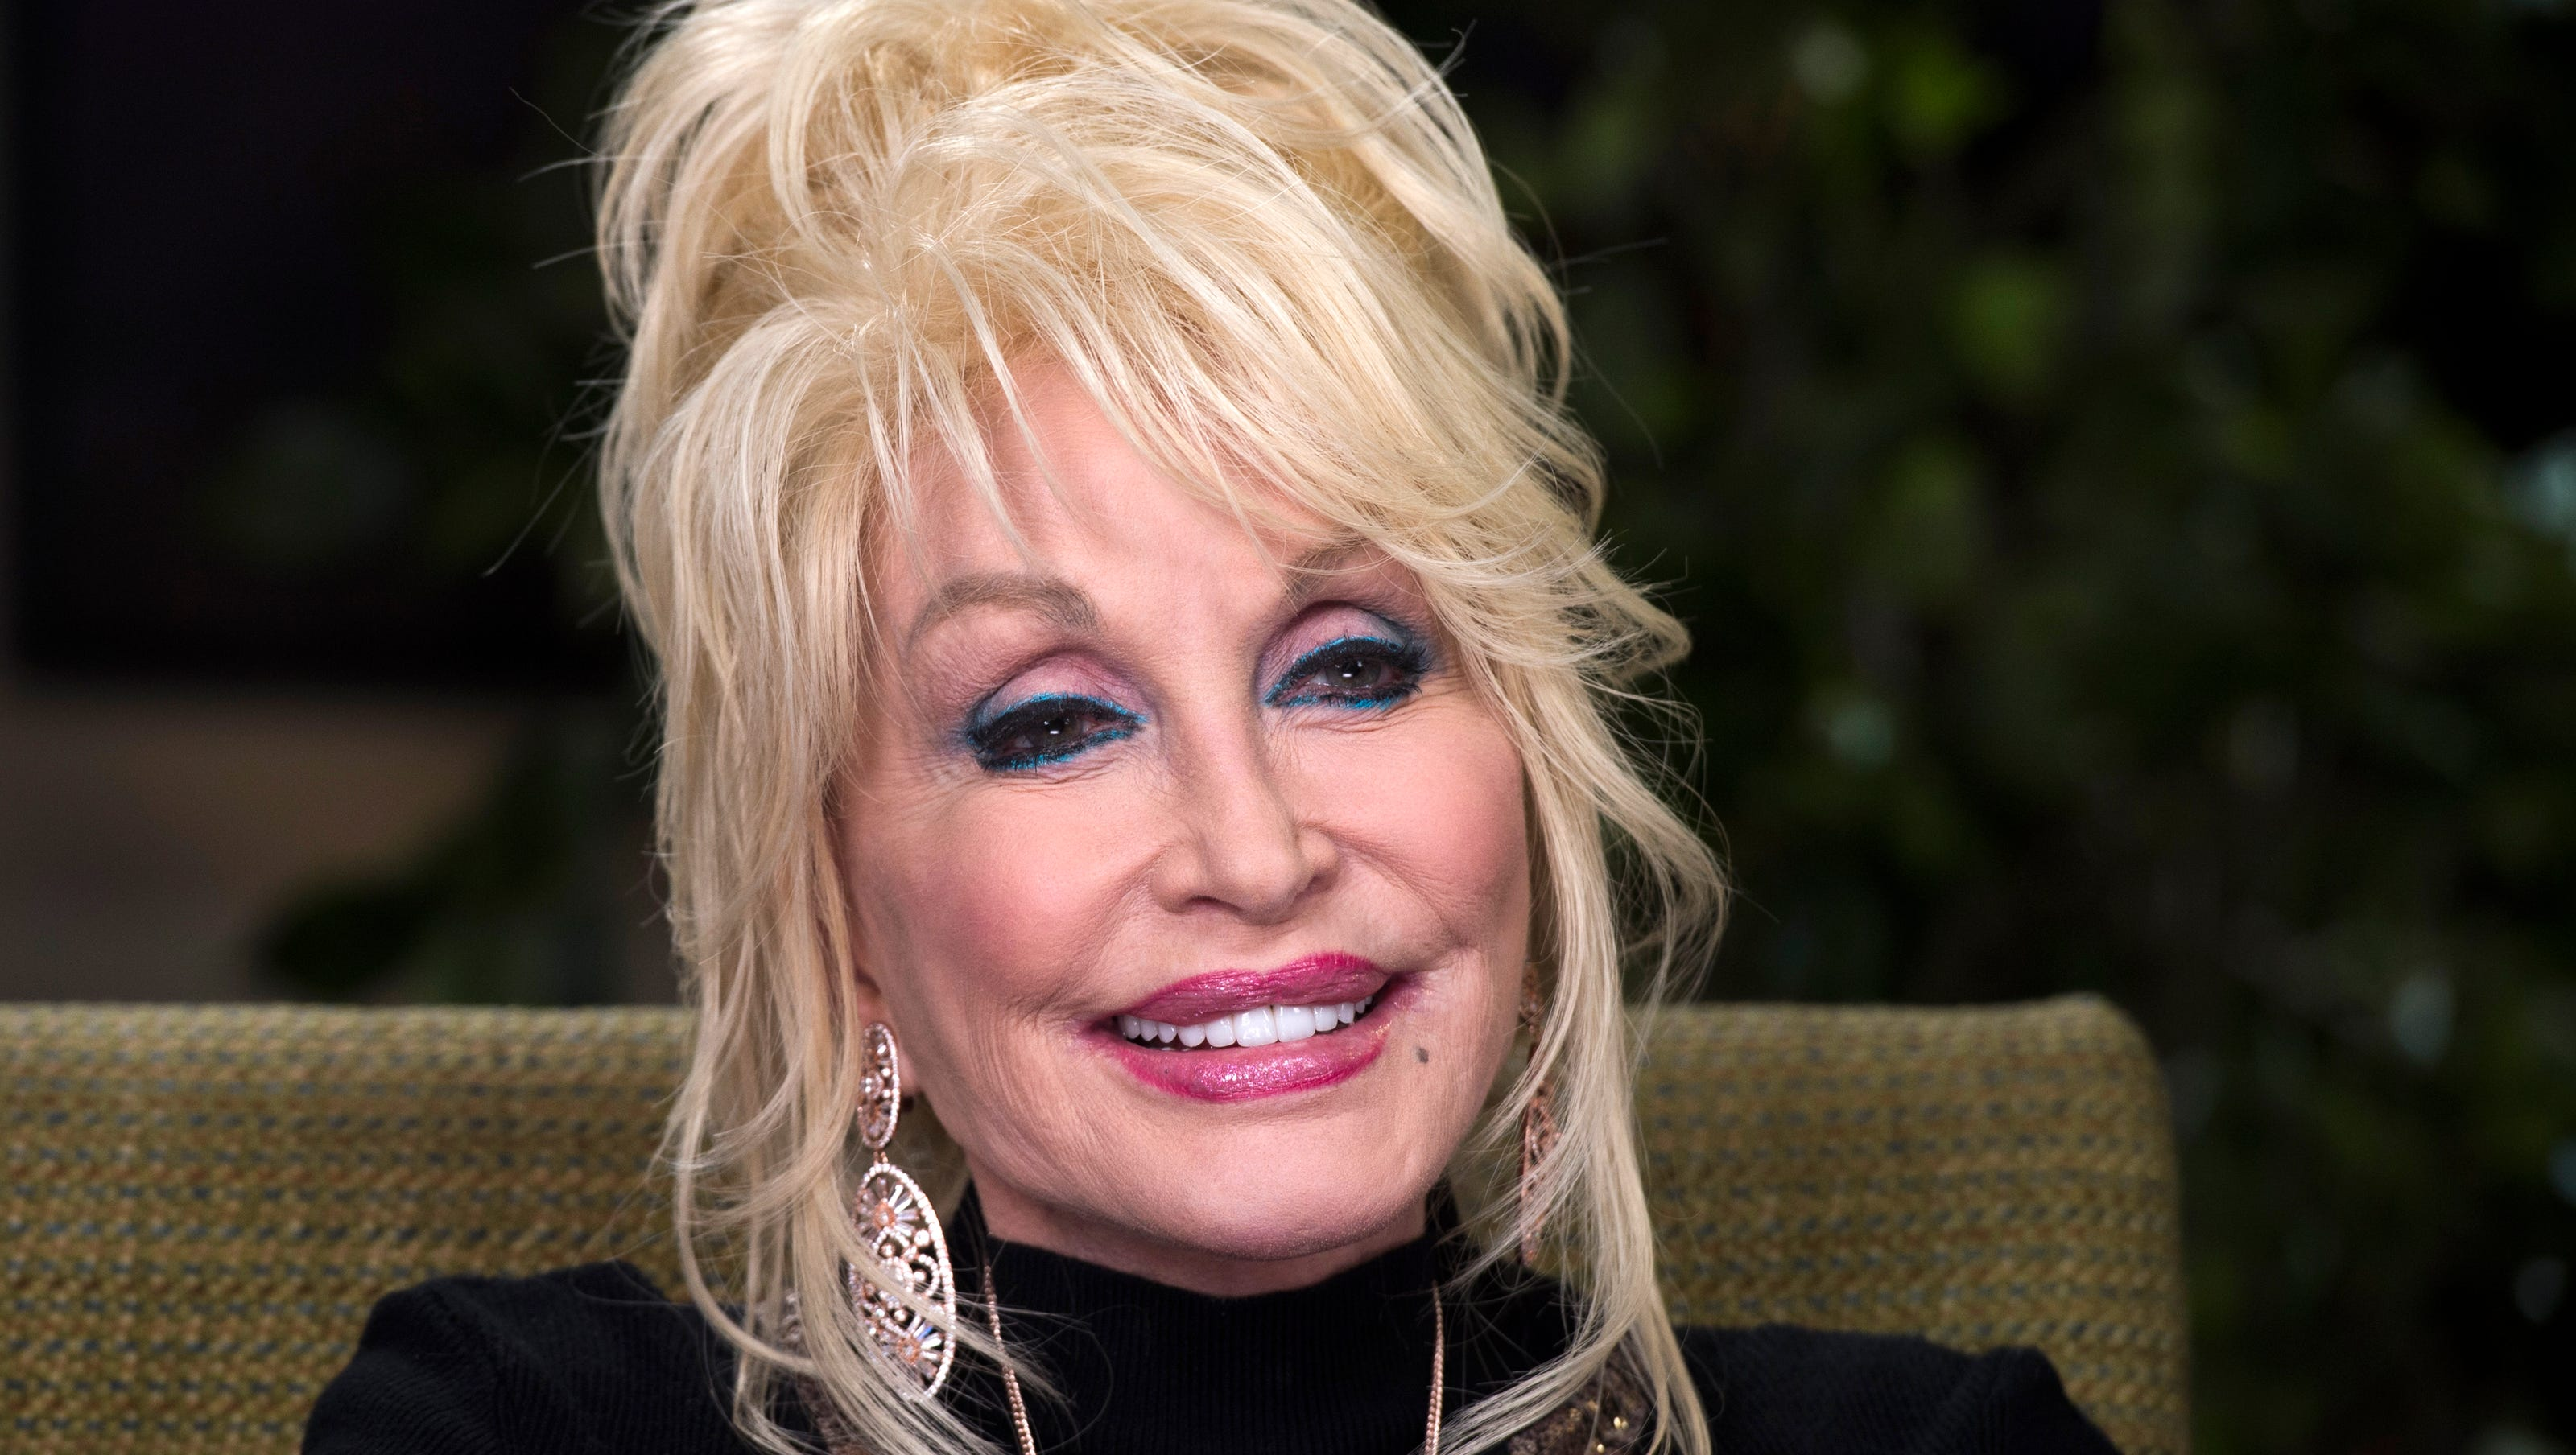 Dolly Partons Up Jimmy Fallon With Risque Jokes About Jennifer Aniston Husband